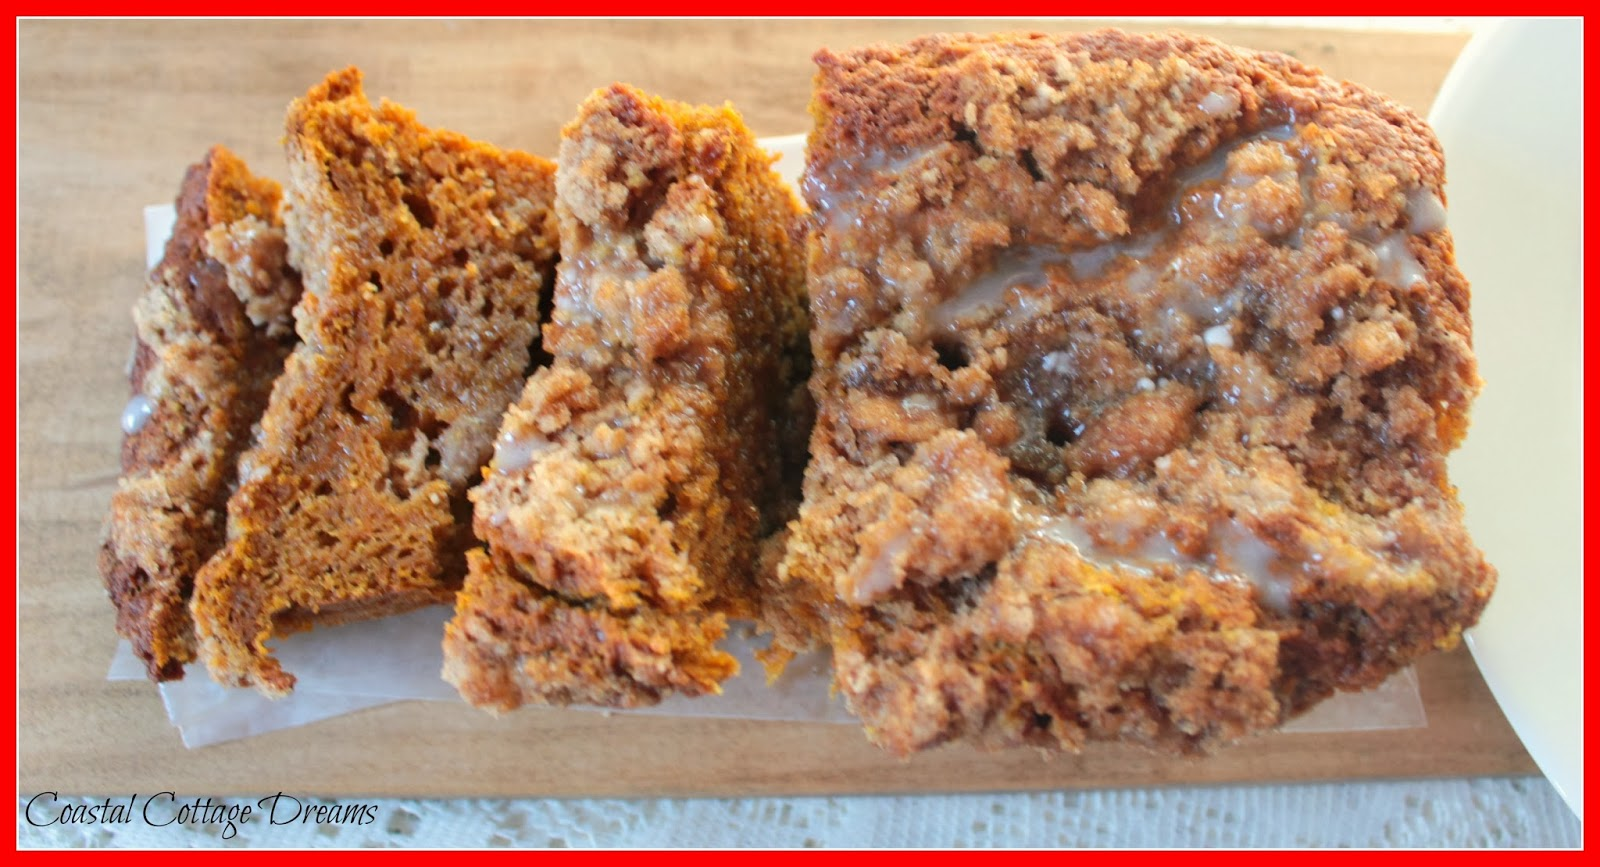 ... Smiles: Pumpkin Coffee Cake with Brown Sugar Pecan Streusel Topping